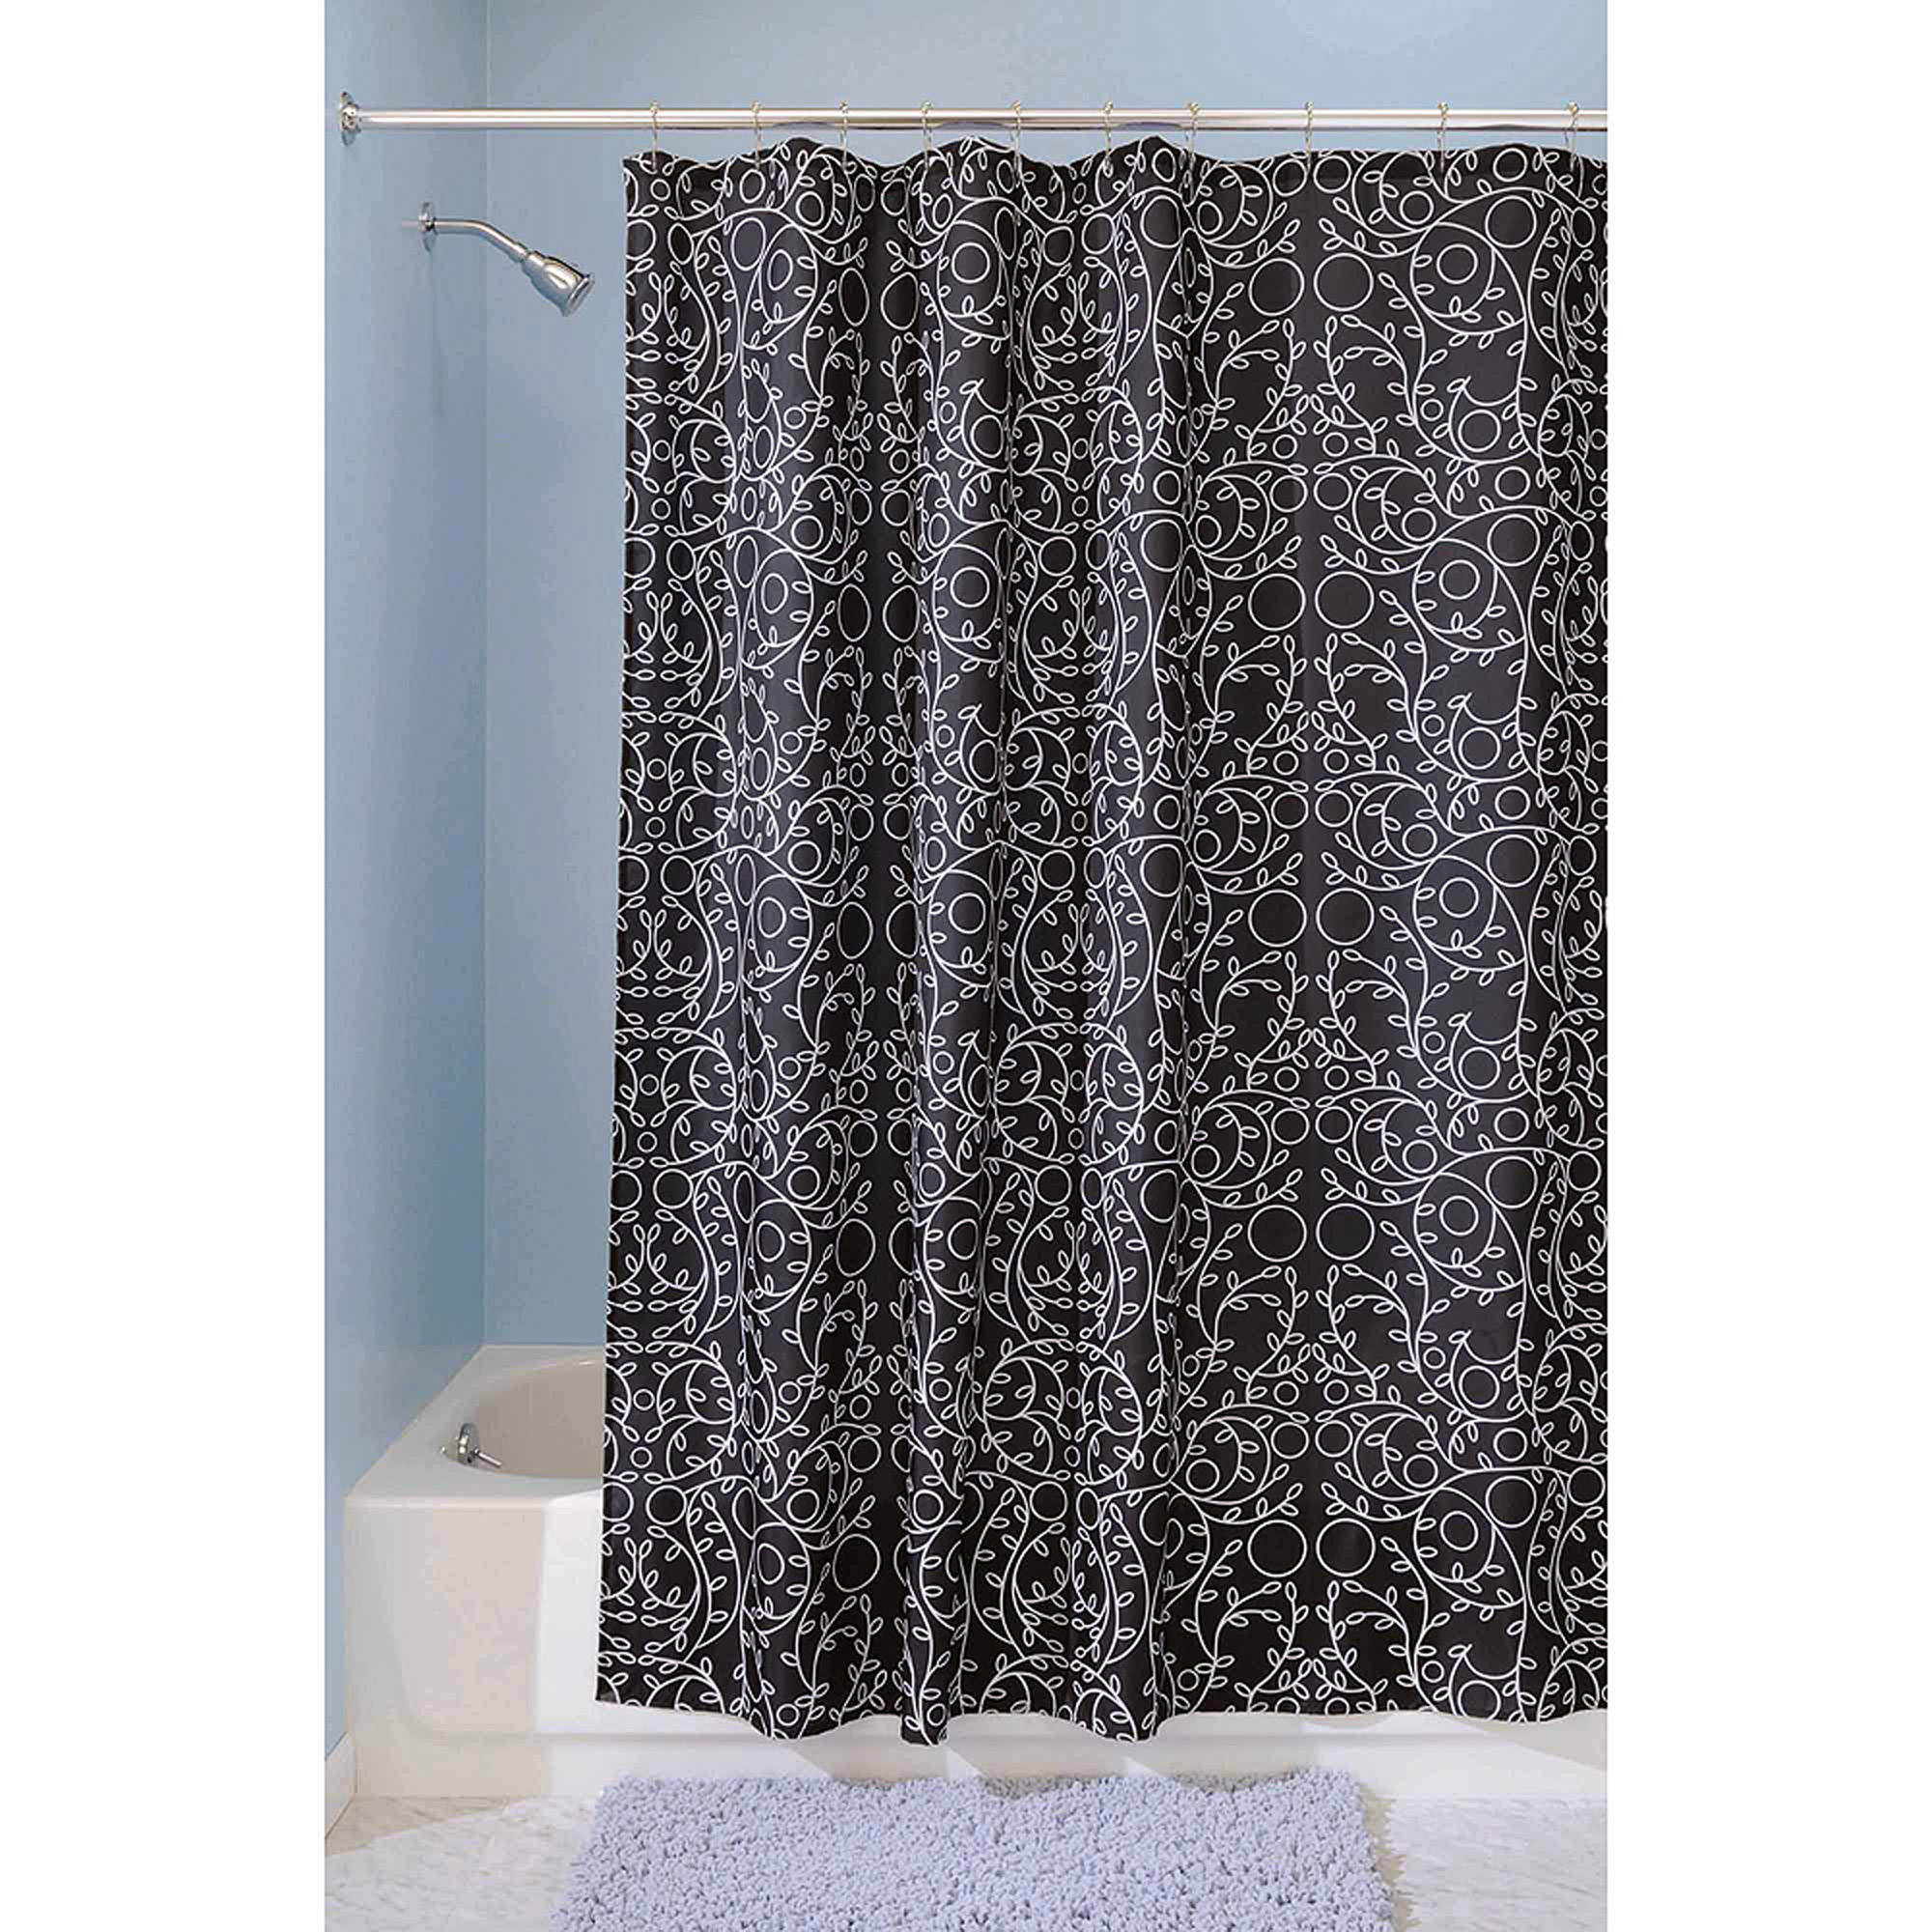 InterDesign Twigz Shower Curtain